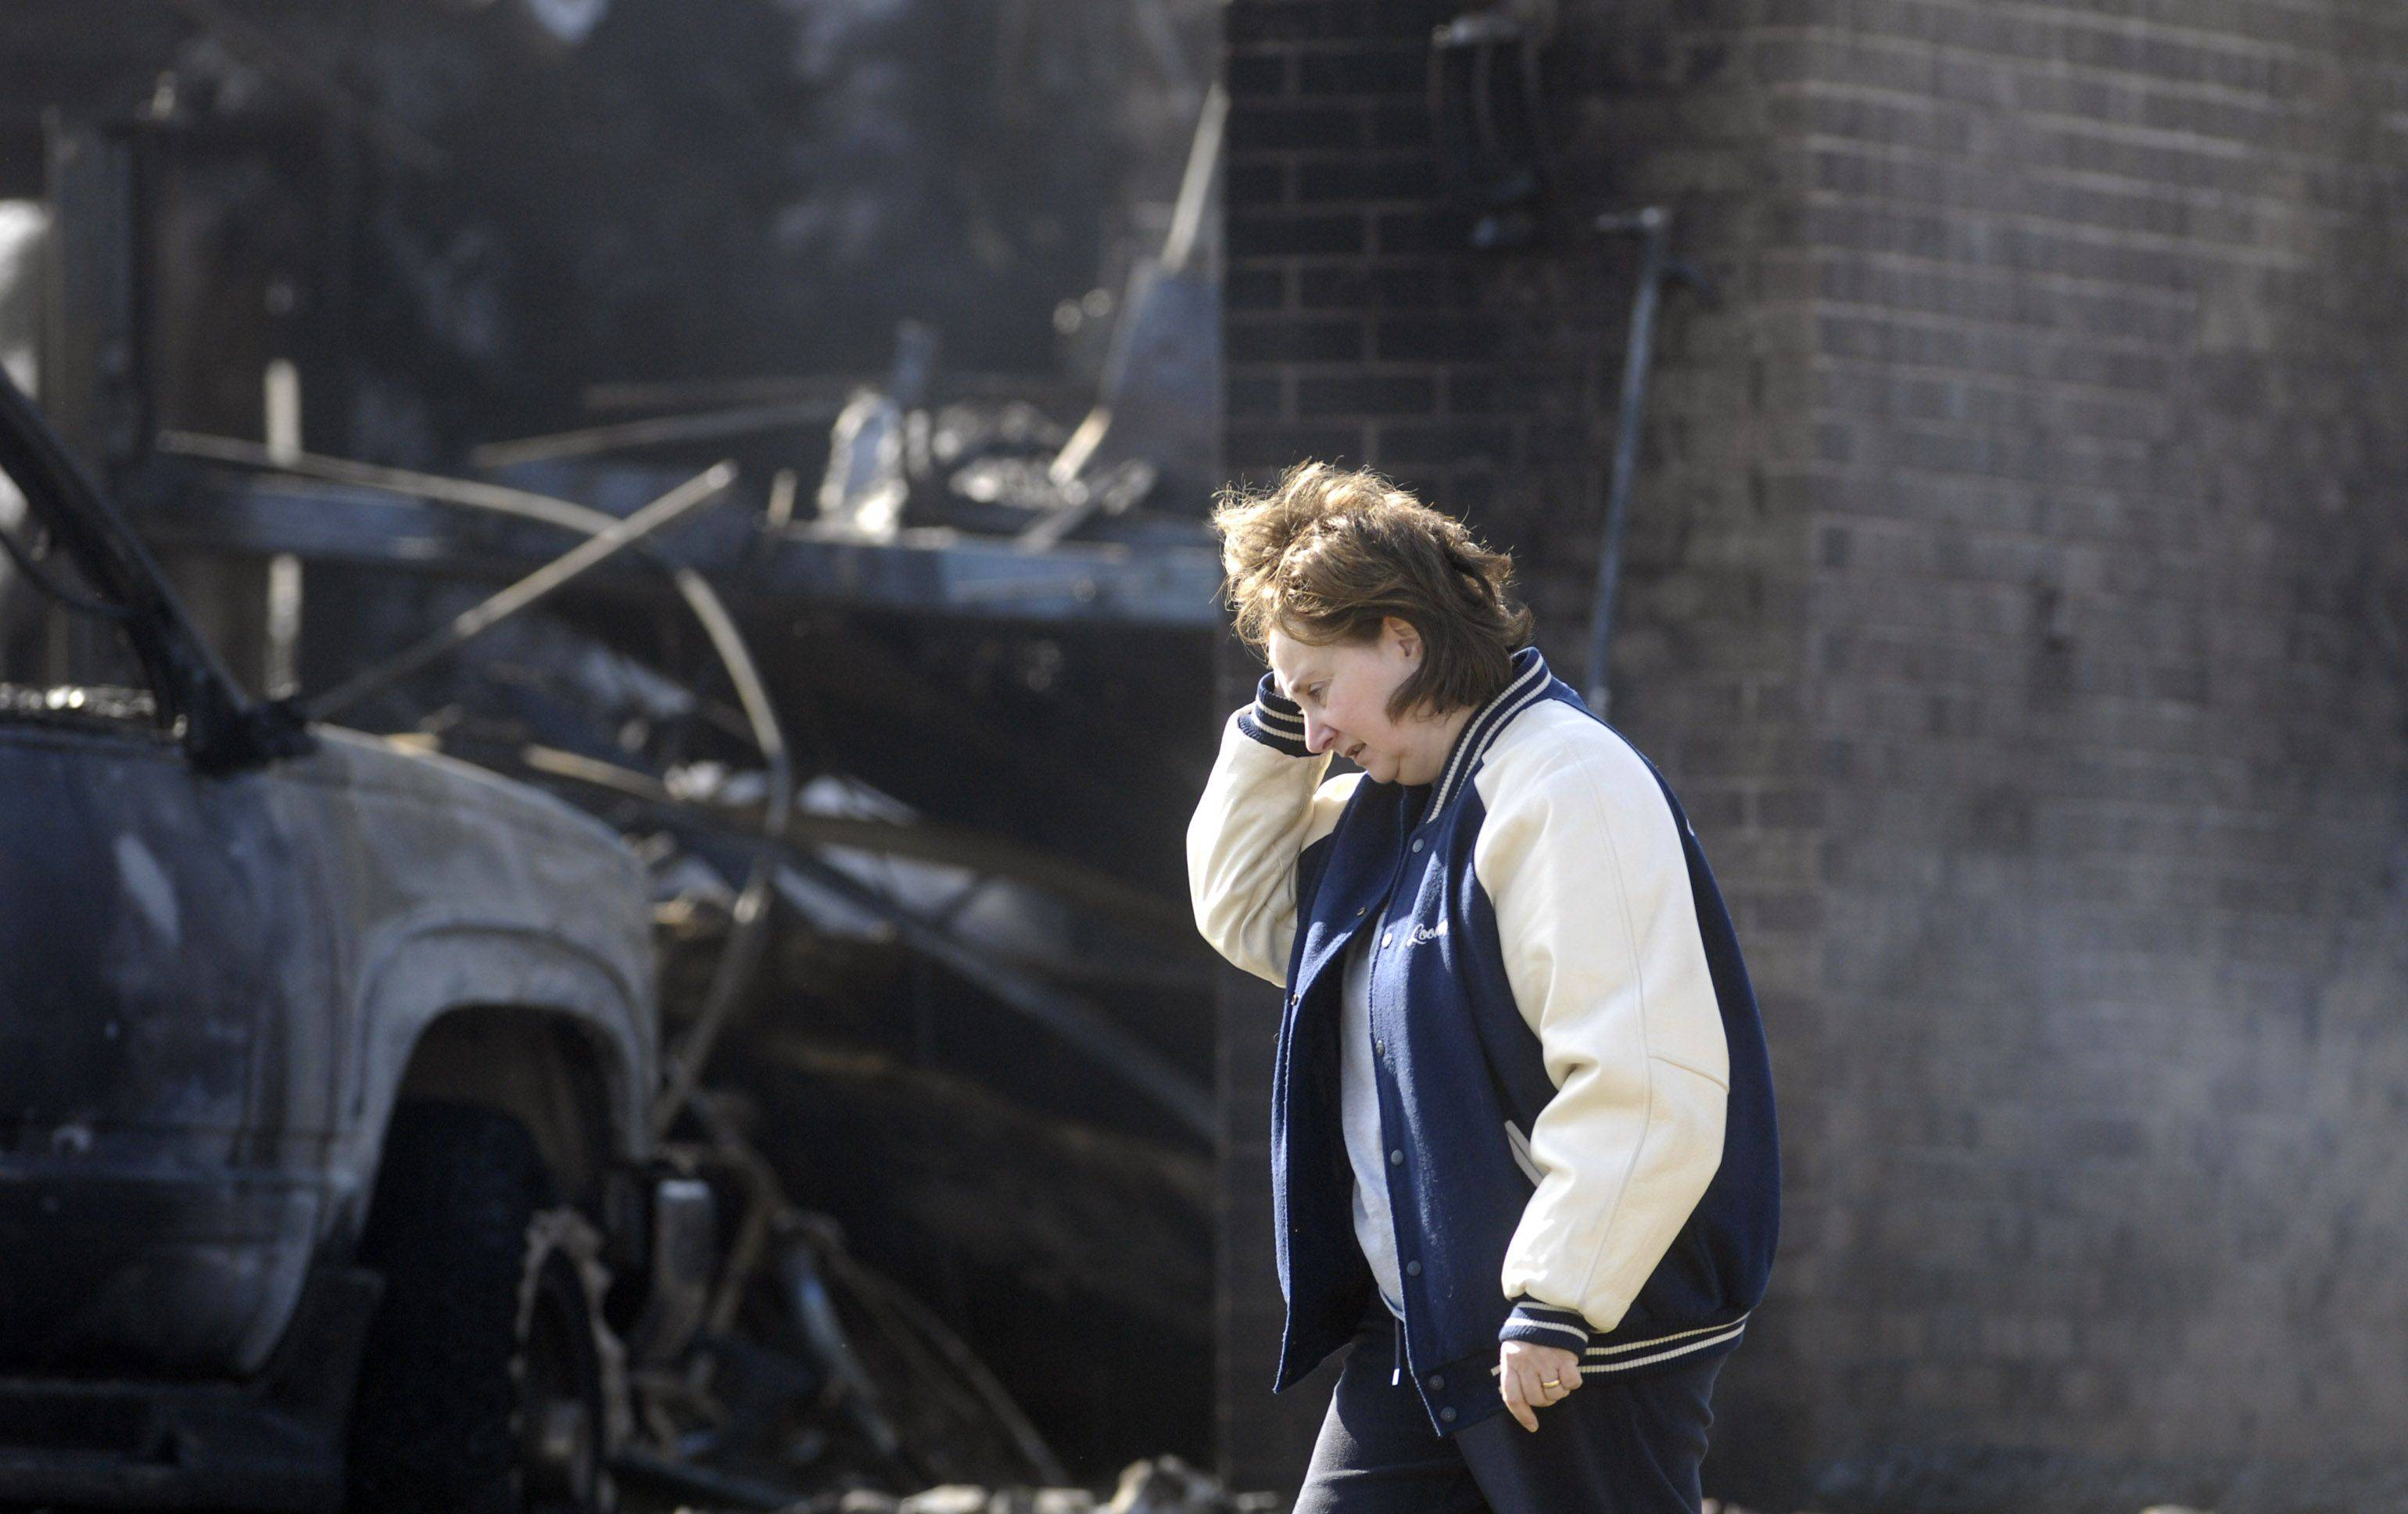 A woman walks past the burned garage and vehicles after a fire at 29W100 Hill Ct. in unincorporated West Chicago.